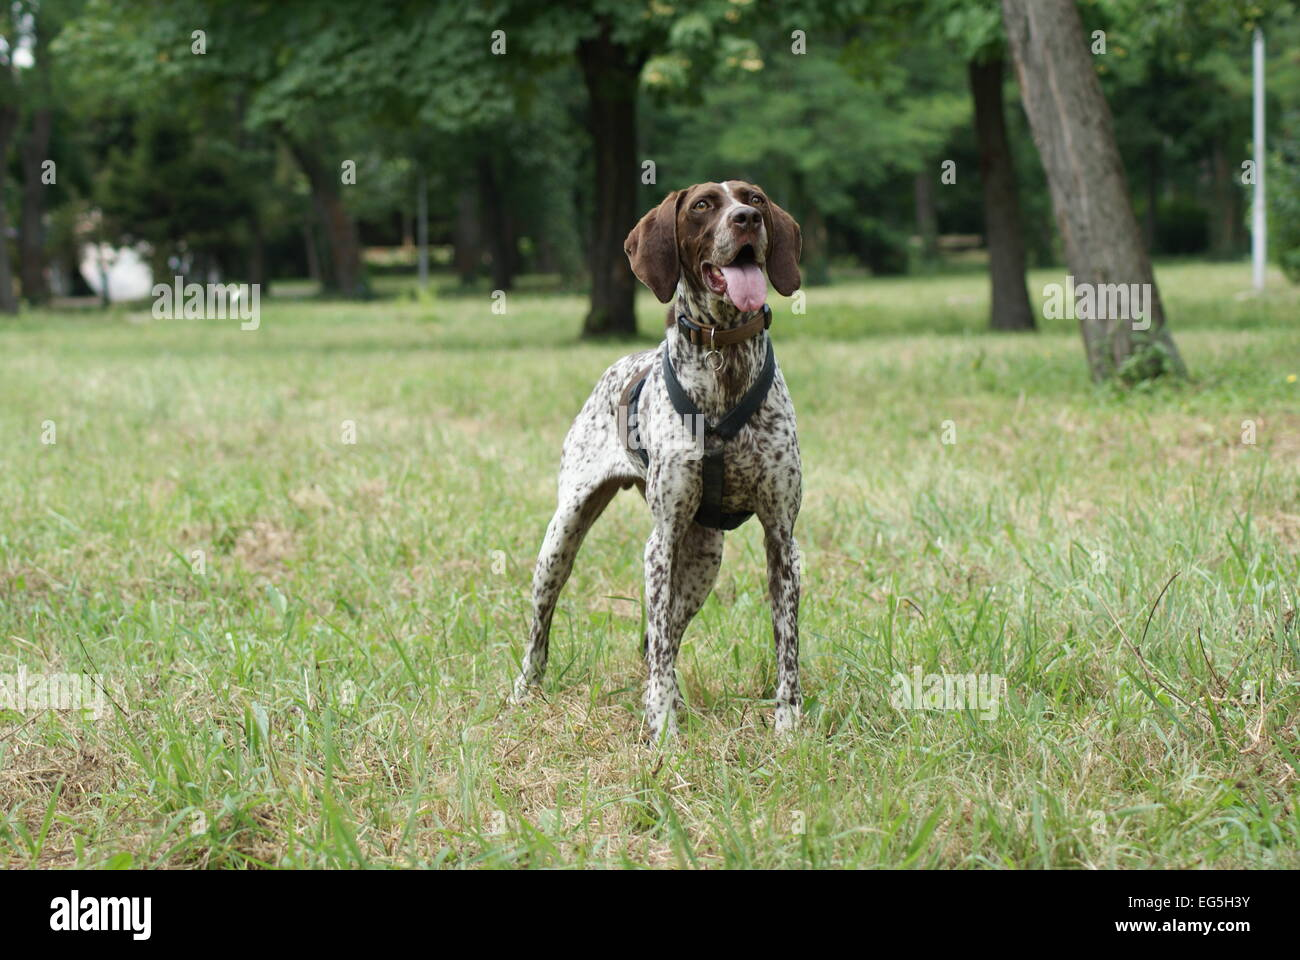 German Short Haired Pointer Dog Standing in a Field. Taken in Bulgaria on the Black Sea. - Stock Image